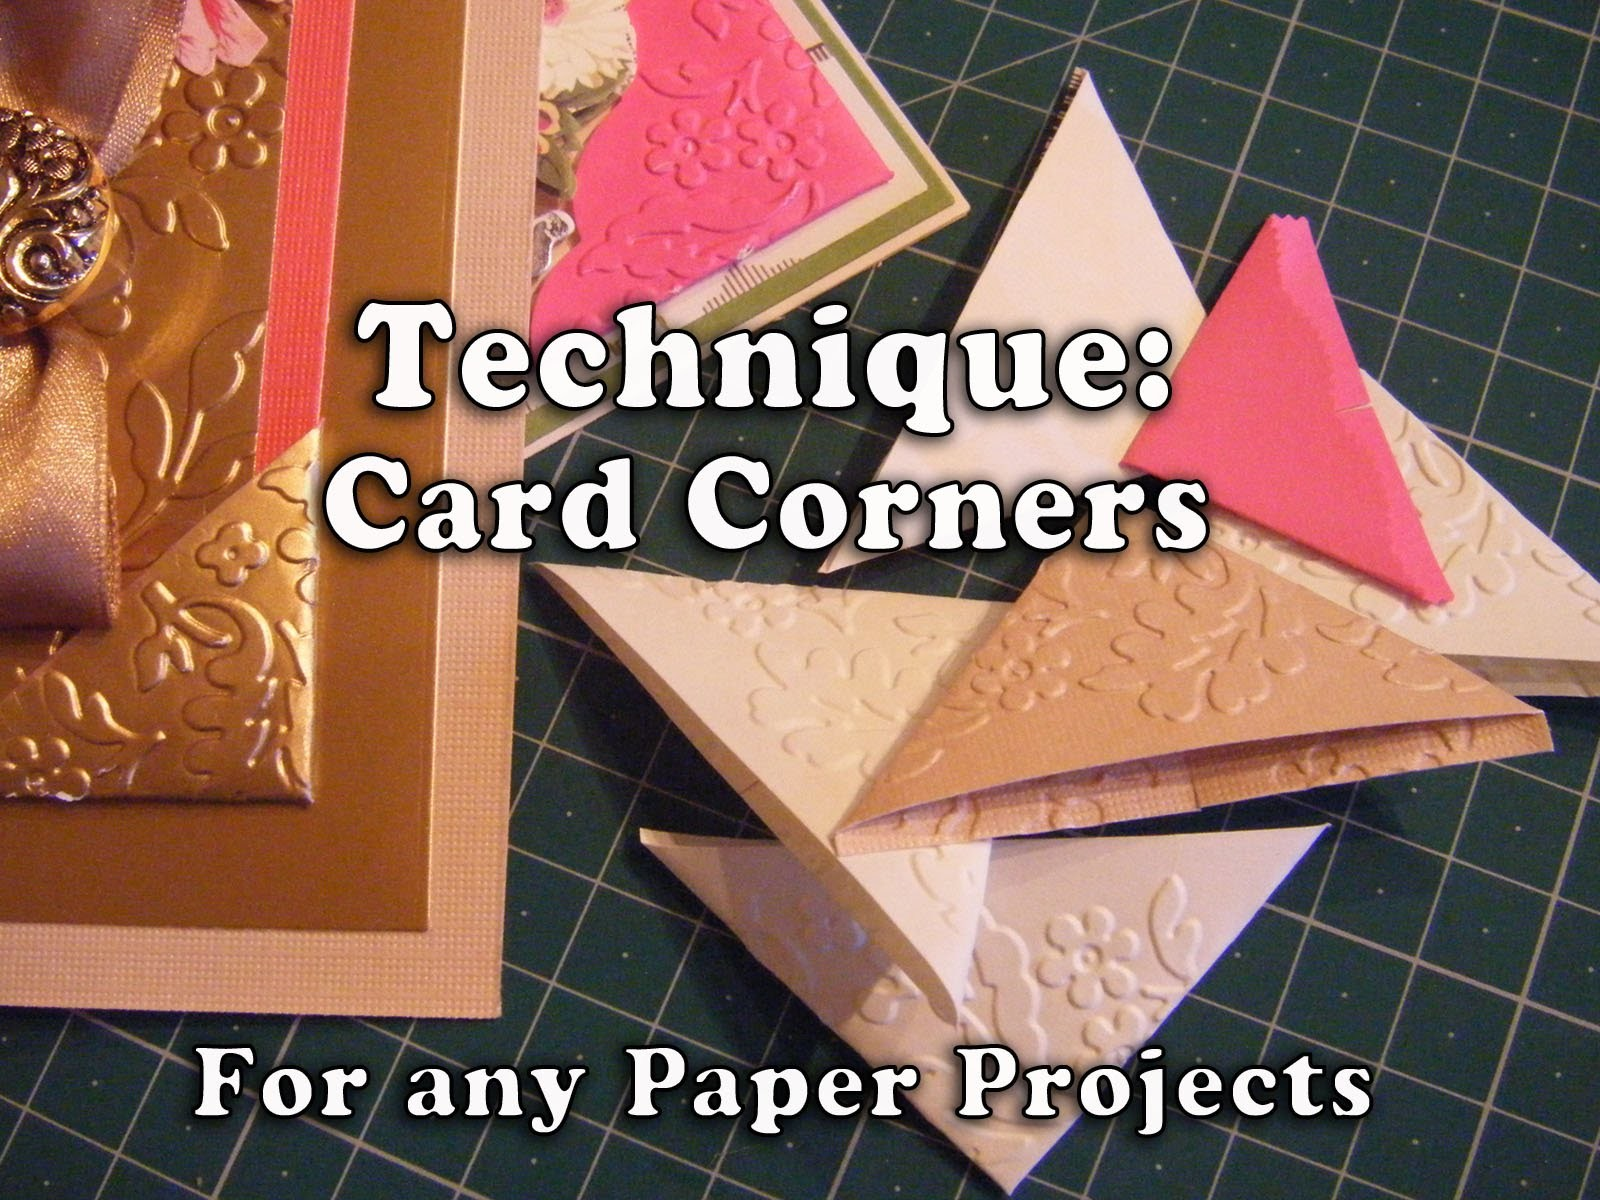 113. Technique: How to make Card Corners for your Paper Projects